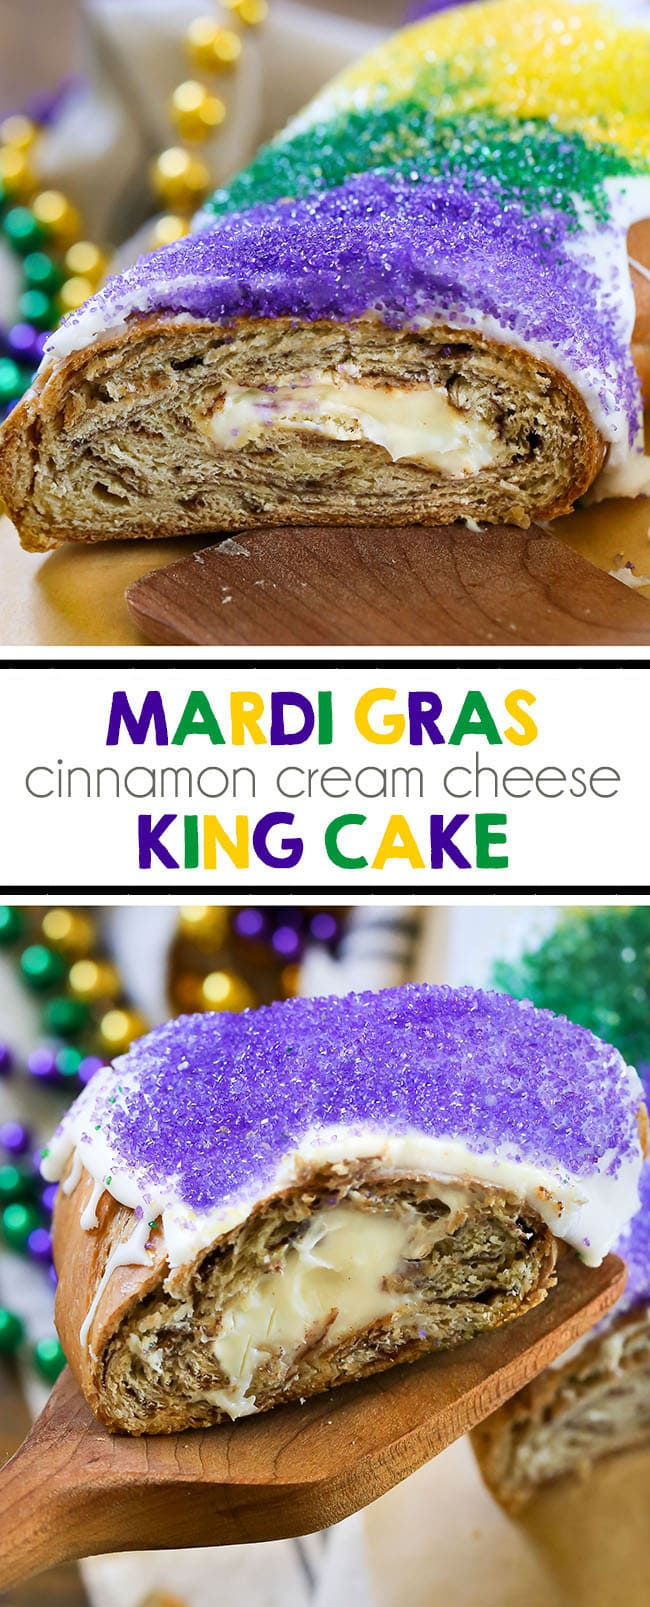 Mardi Gras King Cake - You'll love this homemade New Orleans carnival dessert. Tastes just like a cinnamon roll! #kingcake #dessert #mardigras